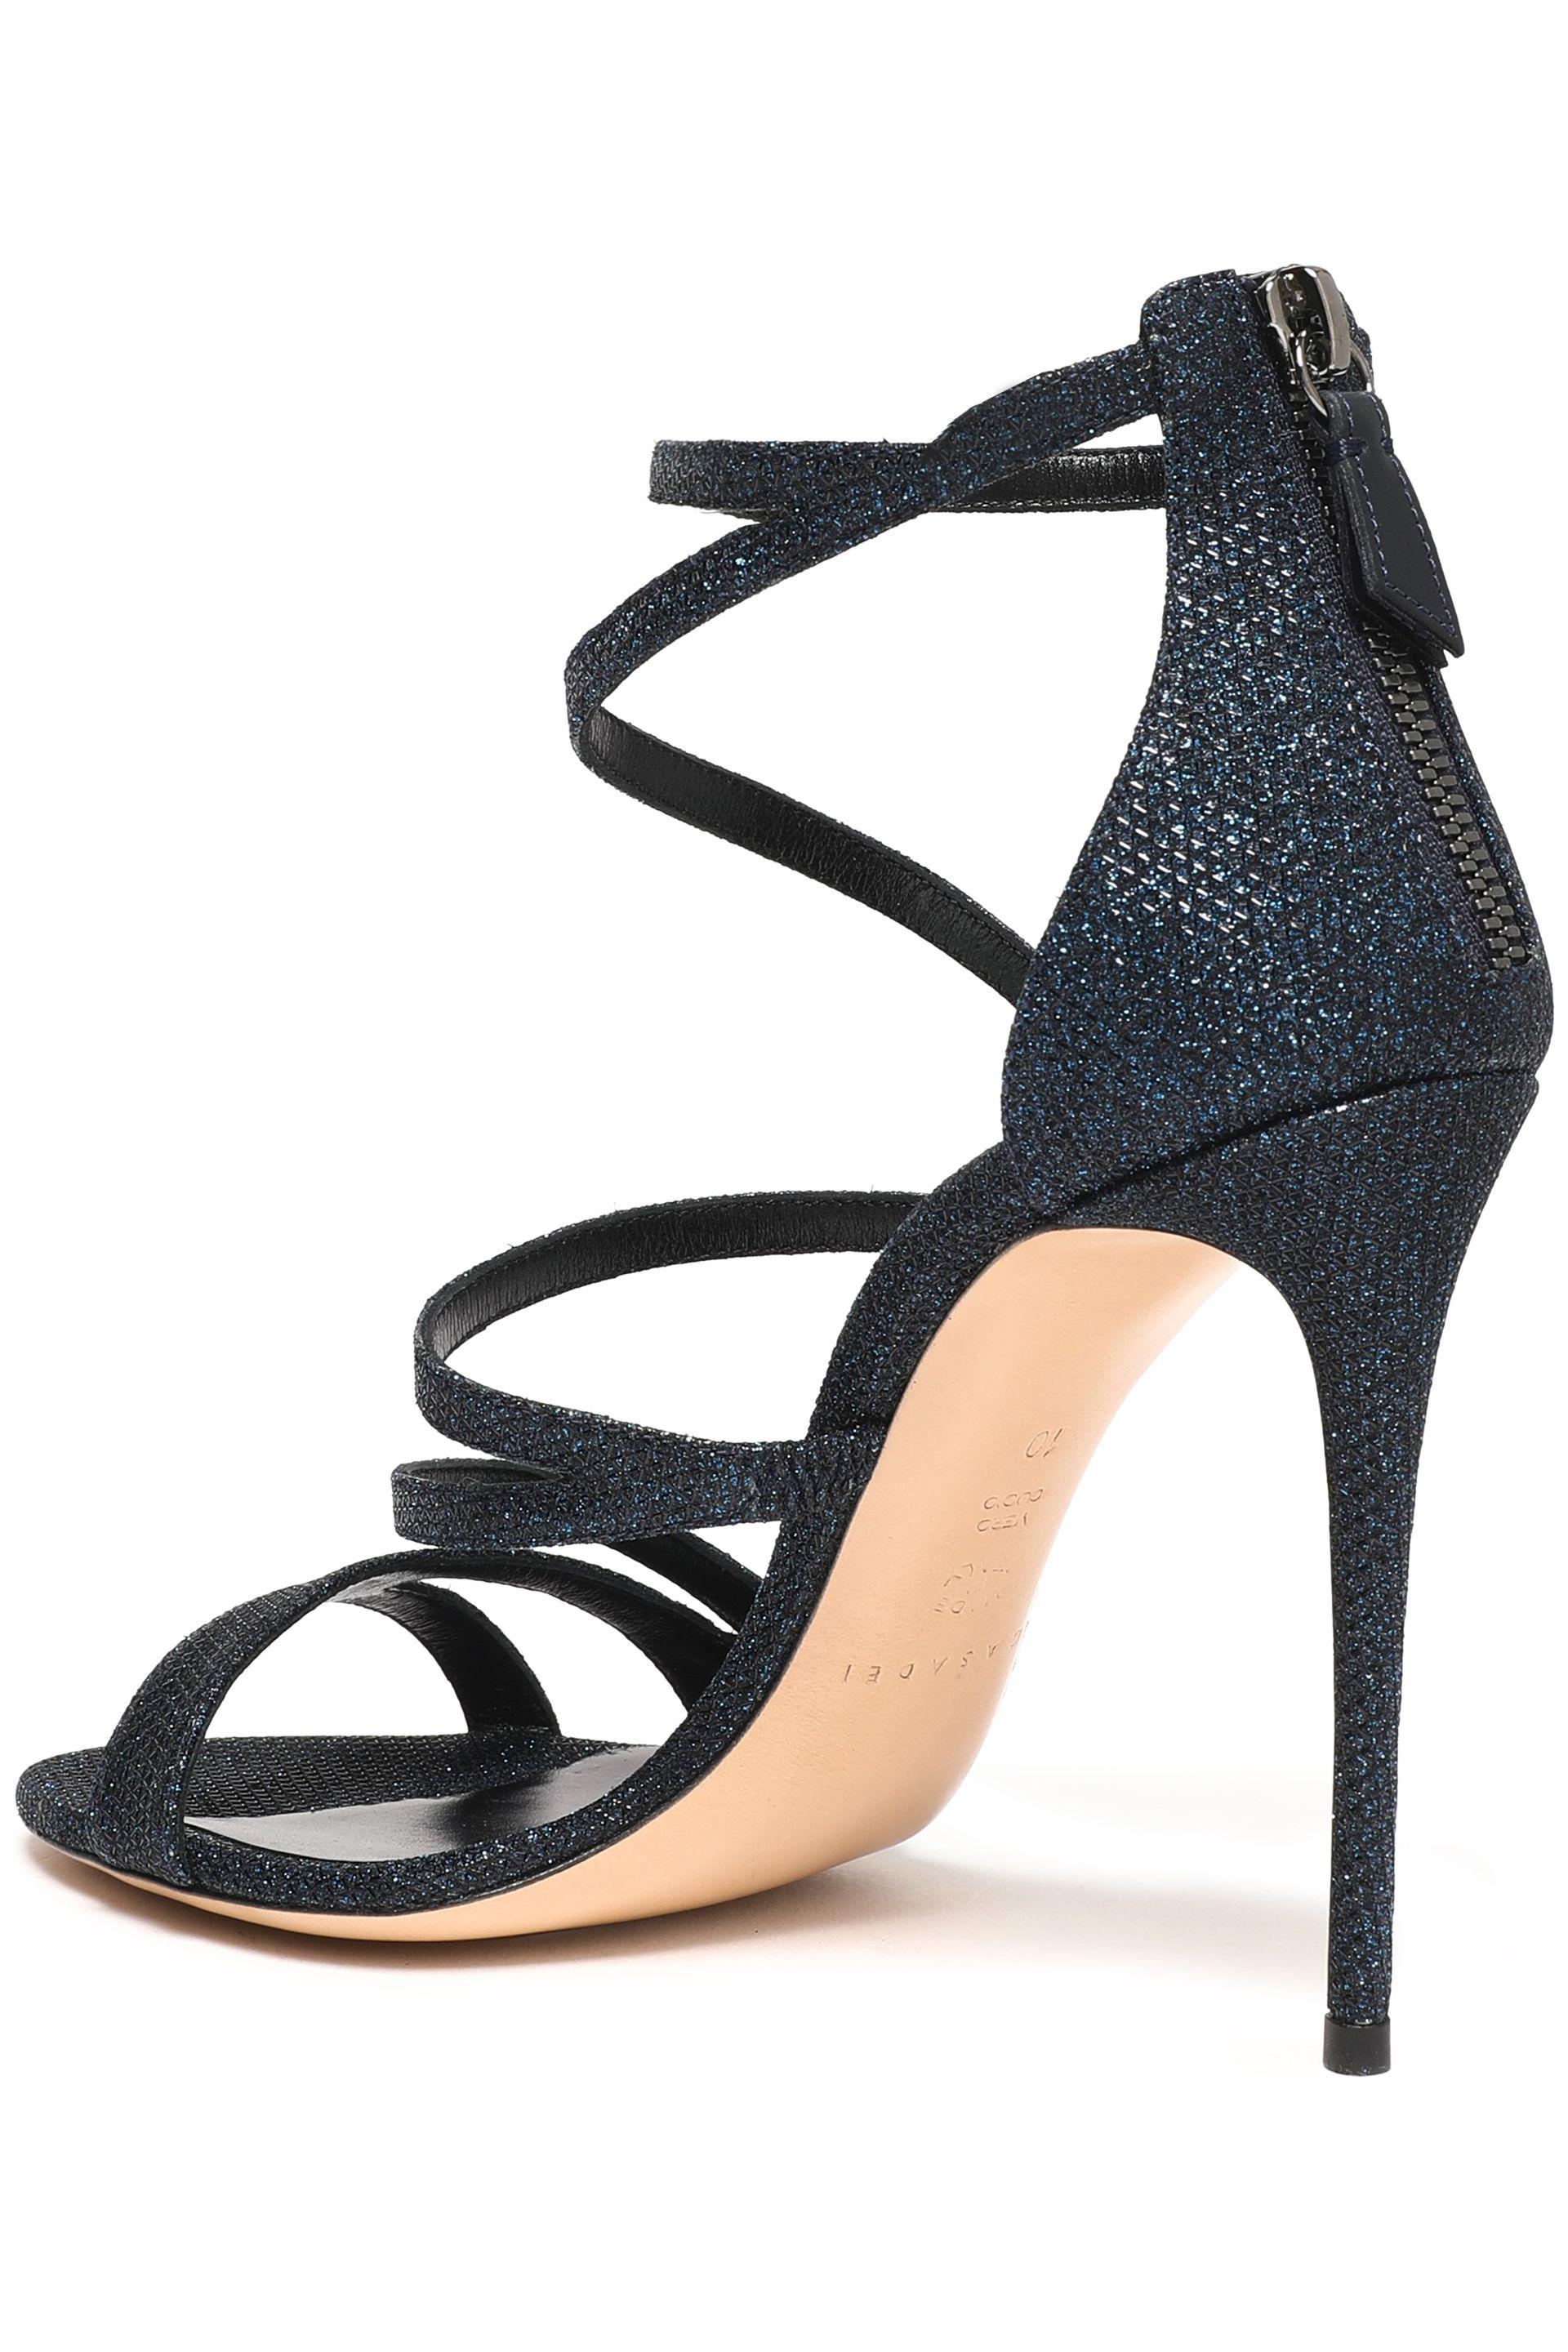 Casadei Woman Satellite Metallic Mesh Sandals Midnight Blue Size 40 Casadei 5i9yy